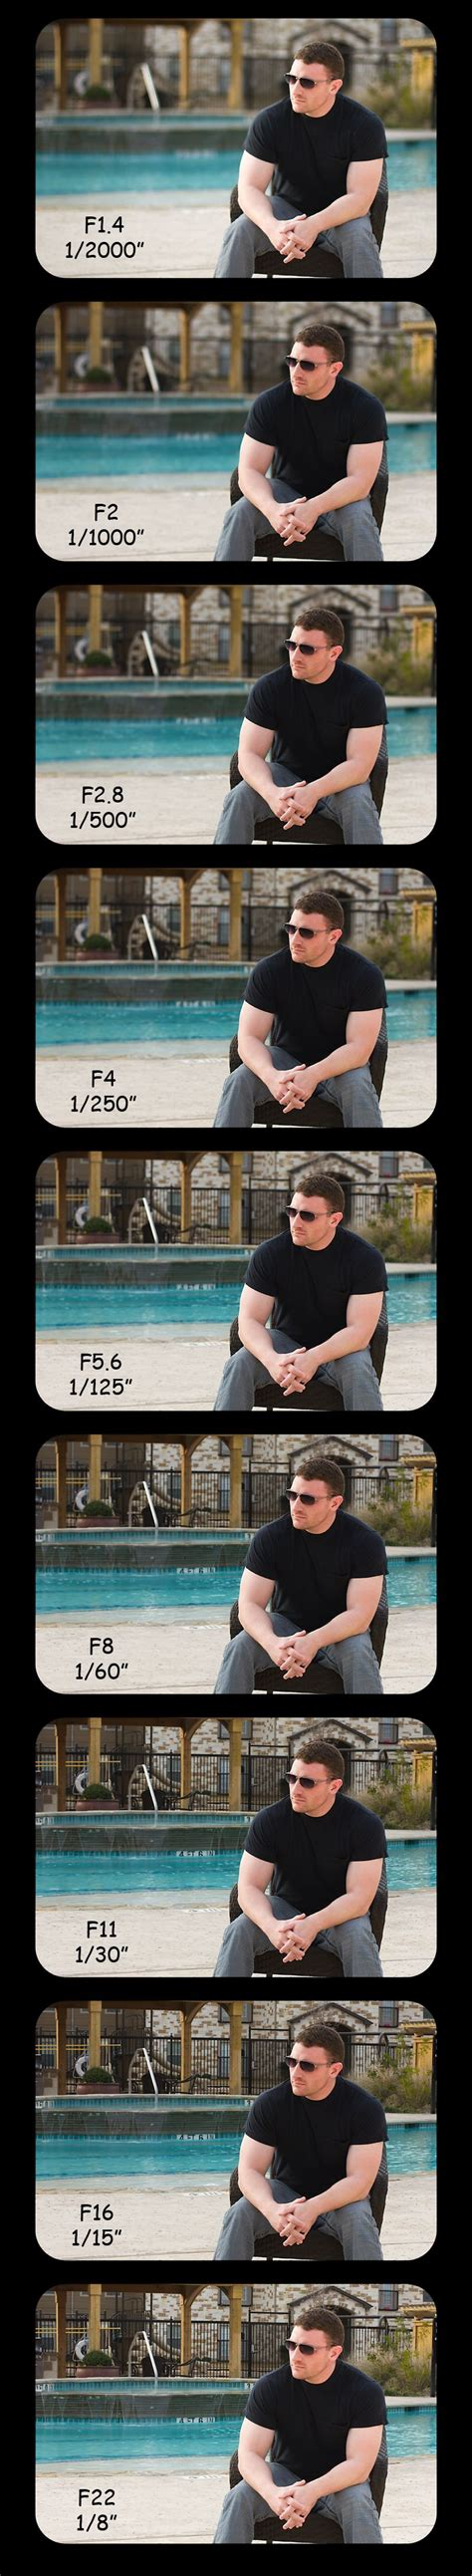 tutorial fotografia basica beginner s photography tutorial with a comparison chart of